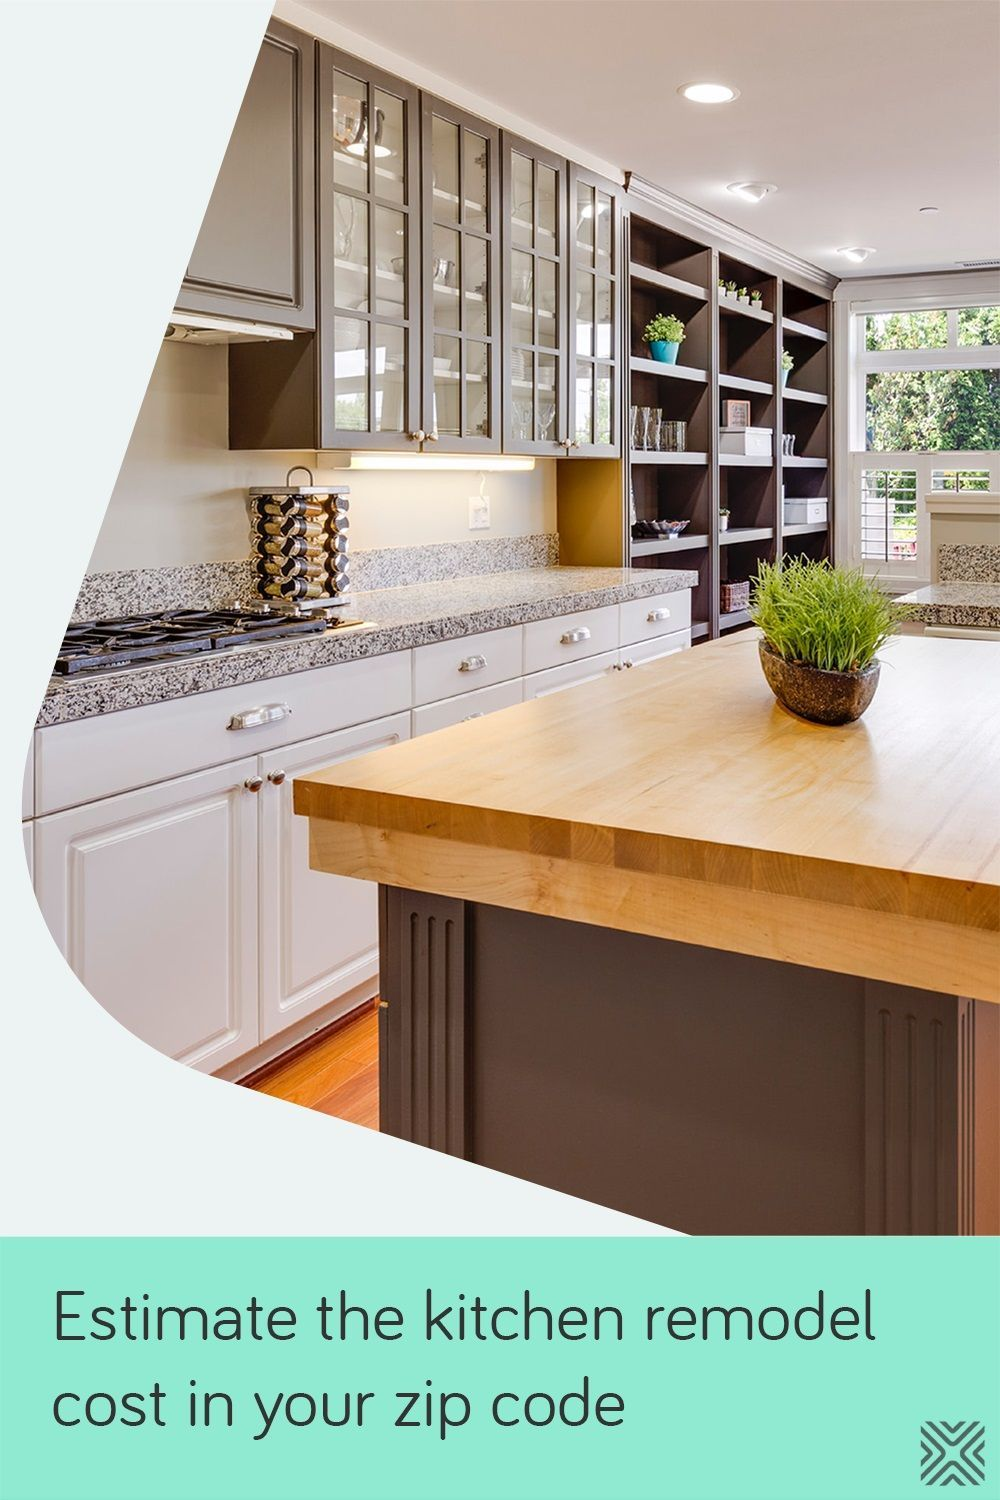 Pin By Kukun Remodeling Ideas On Small Spaces In 2020 Kitchen Renovation Cost Decorating Small Spaces Small Spaces